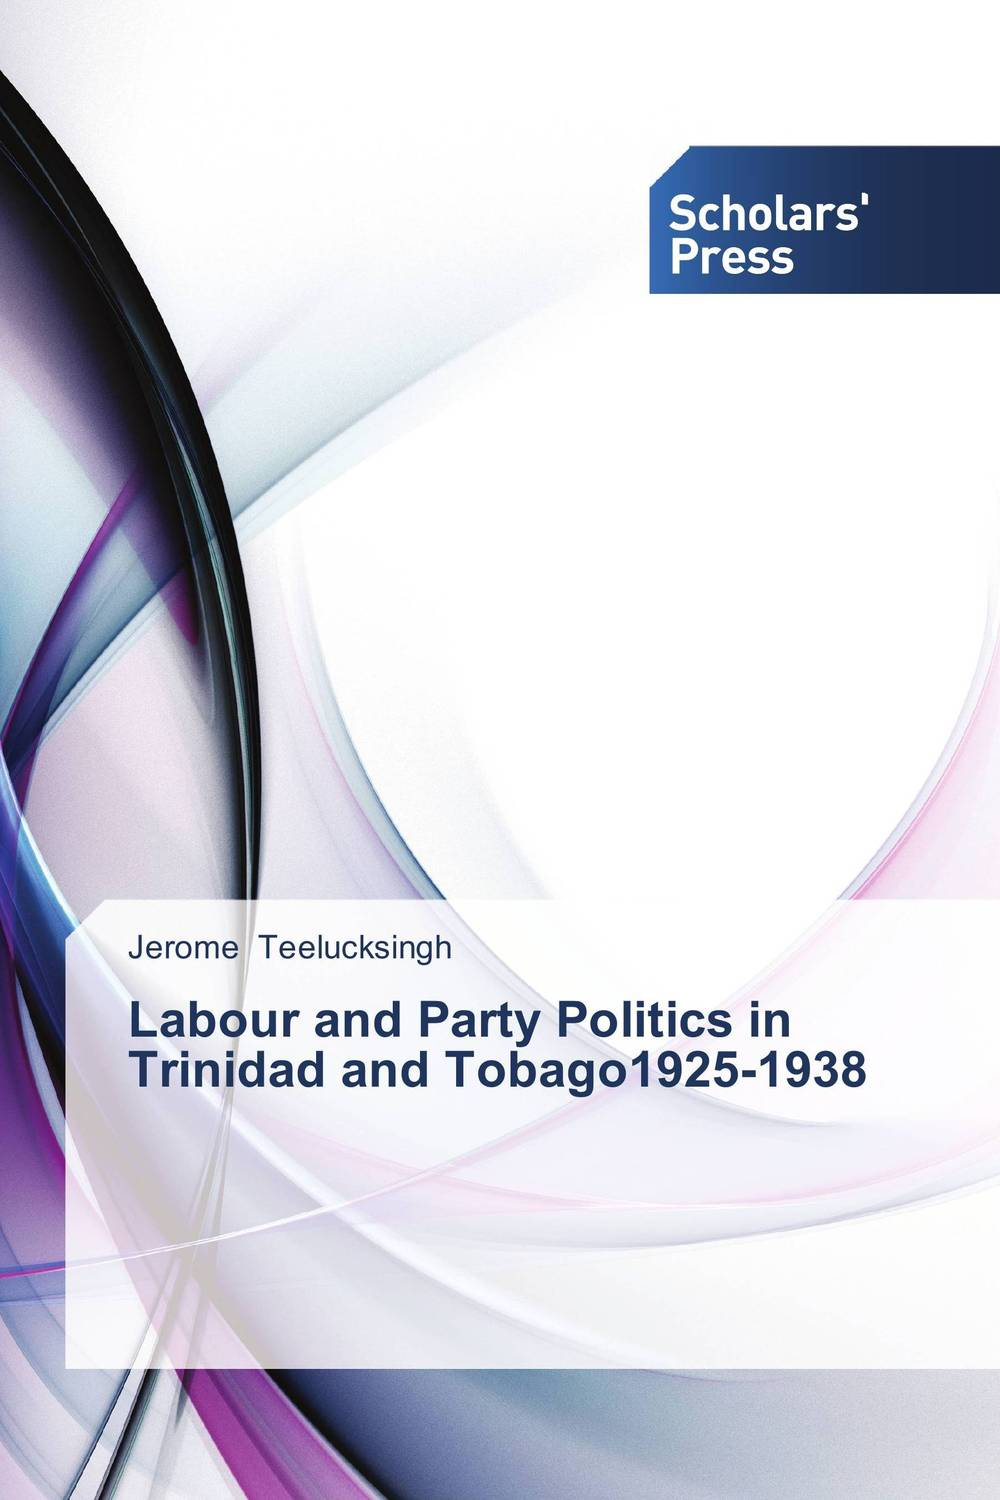 Labour  and  Party Politics  in  Trinidad  and Tobago1925-1938